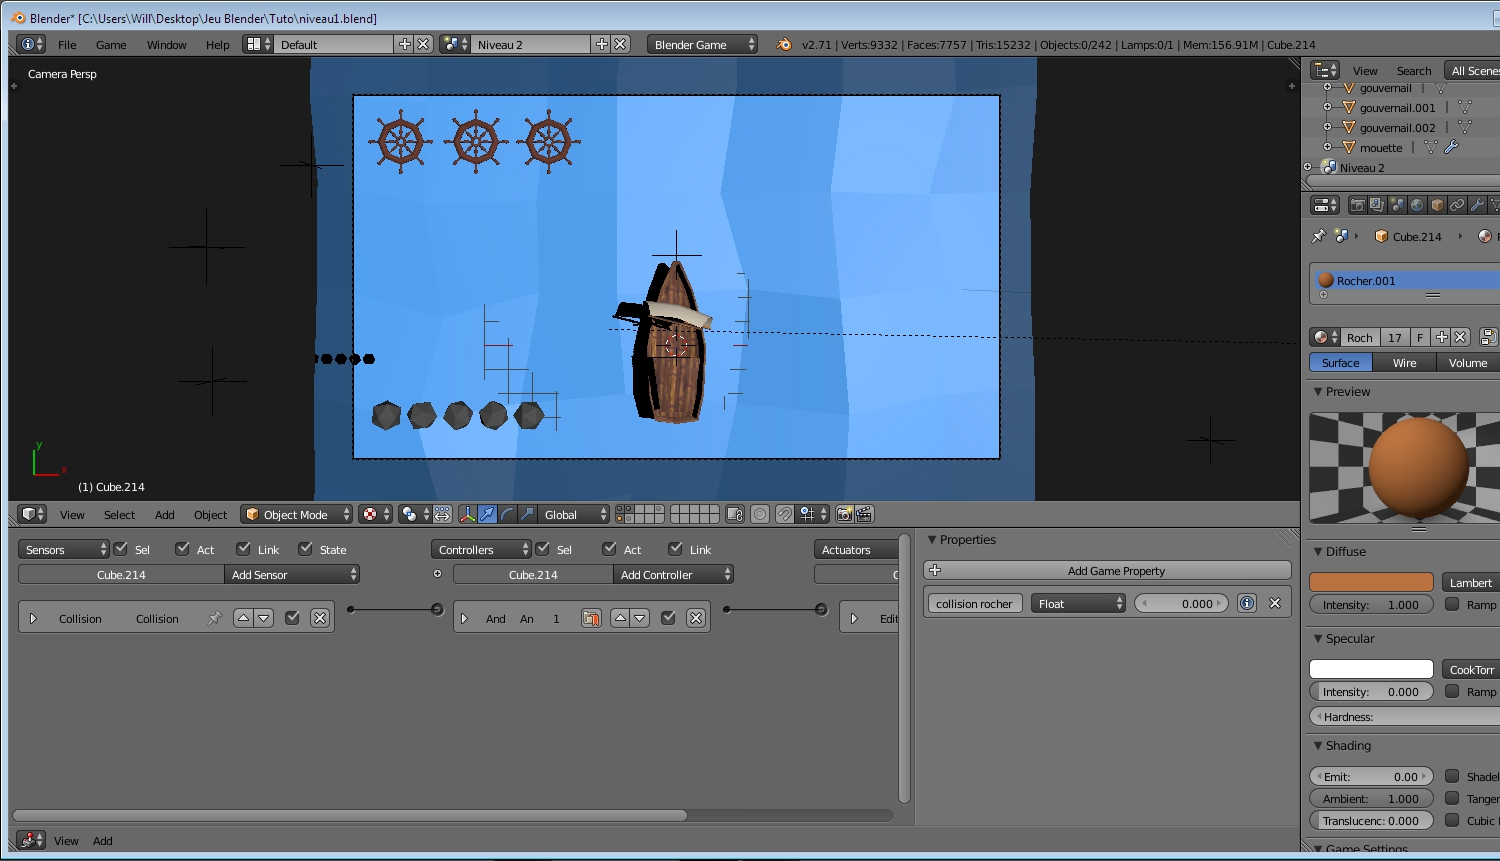 Complete Blender Game Art Tutorial. From zero experience to 2D or